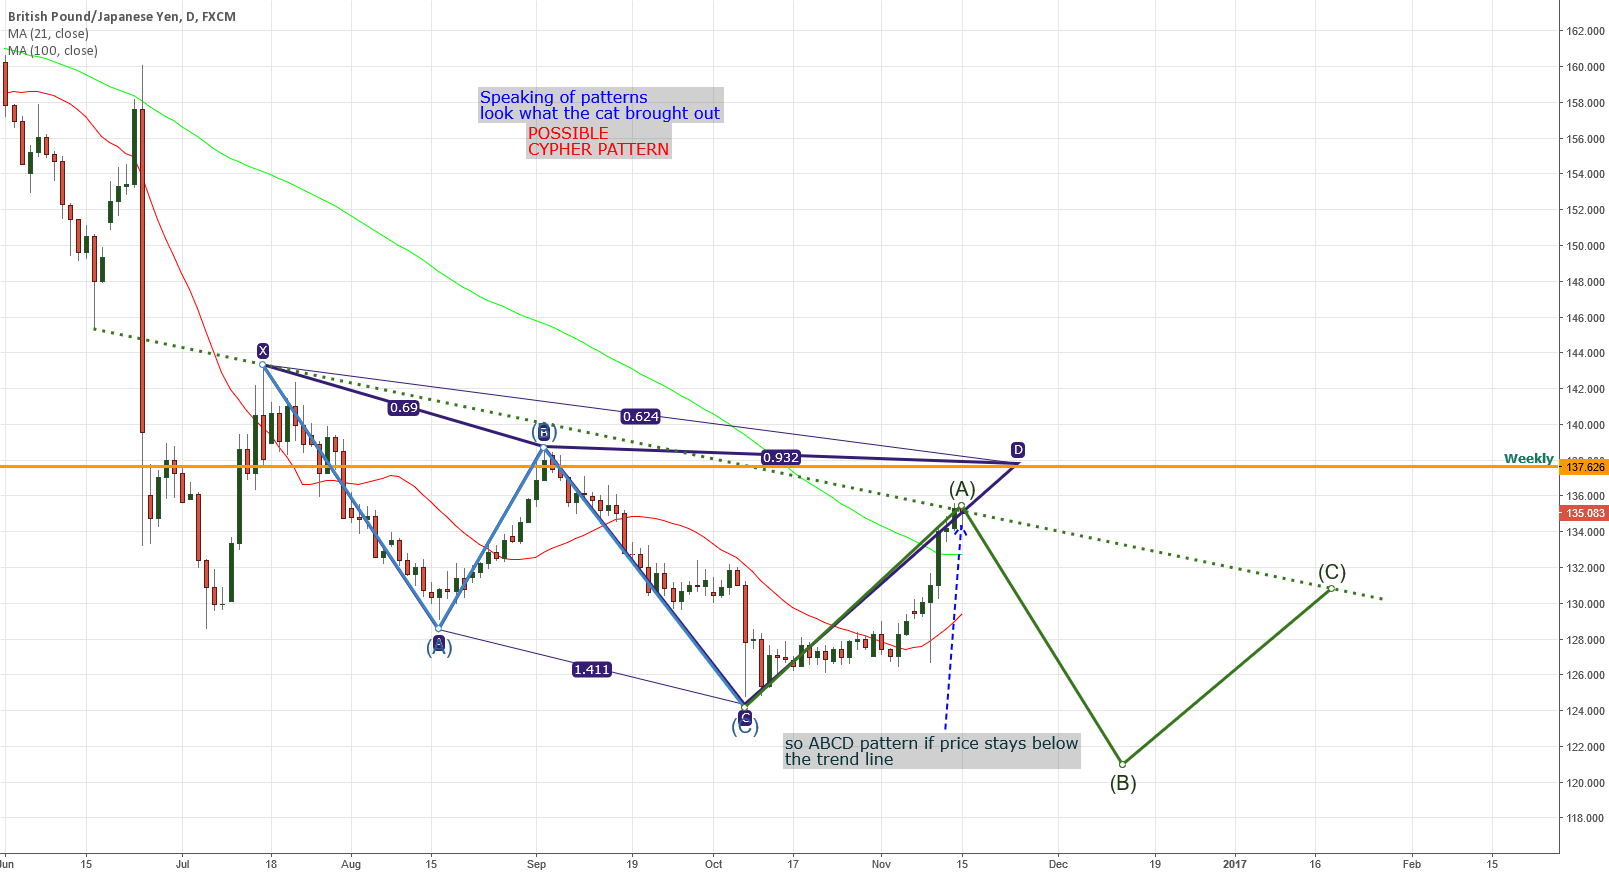 GBPJPY Possible Cypher pattern